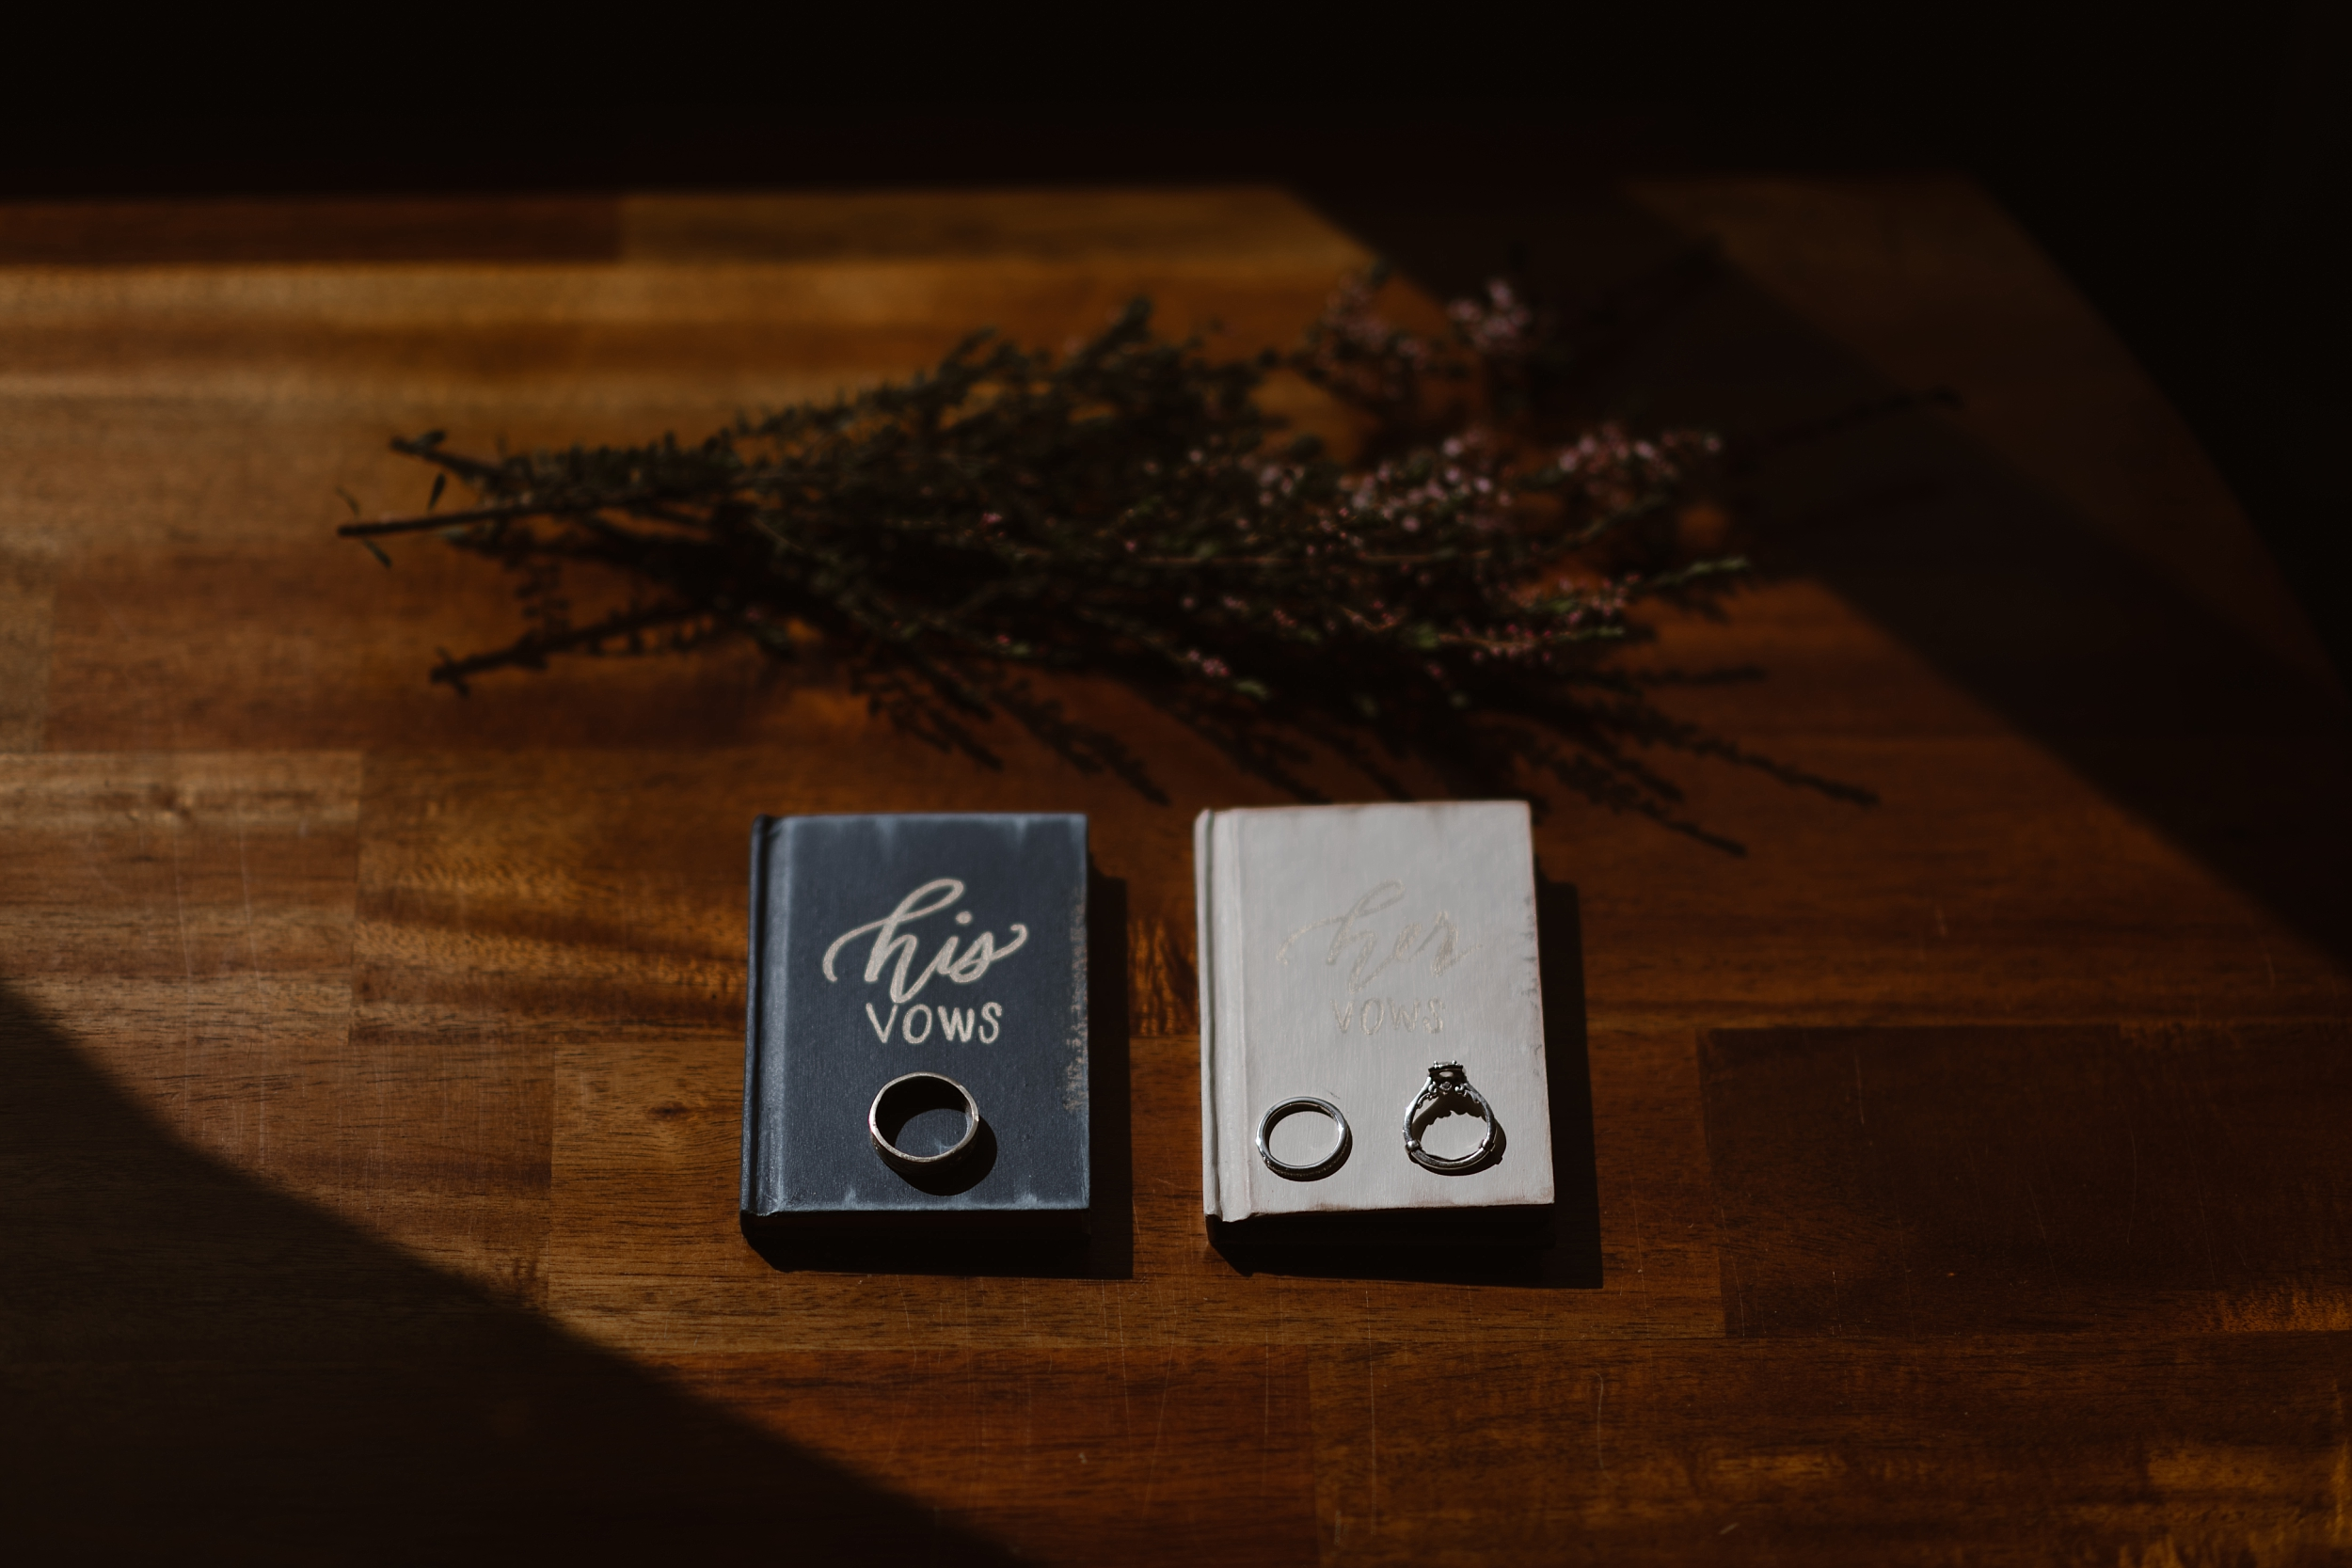 Laying on a wooded table in an Alaskan Airbnb are two books, one titled his vows and the other titled her vows. Above the vow books are dried flowers and laying on top of the books are wedding rings and the bride's engagement ring. All of these items will be included in the Alaska helicopter elopement story, captured by elopement photographer Adventure Instead.